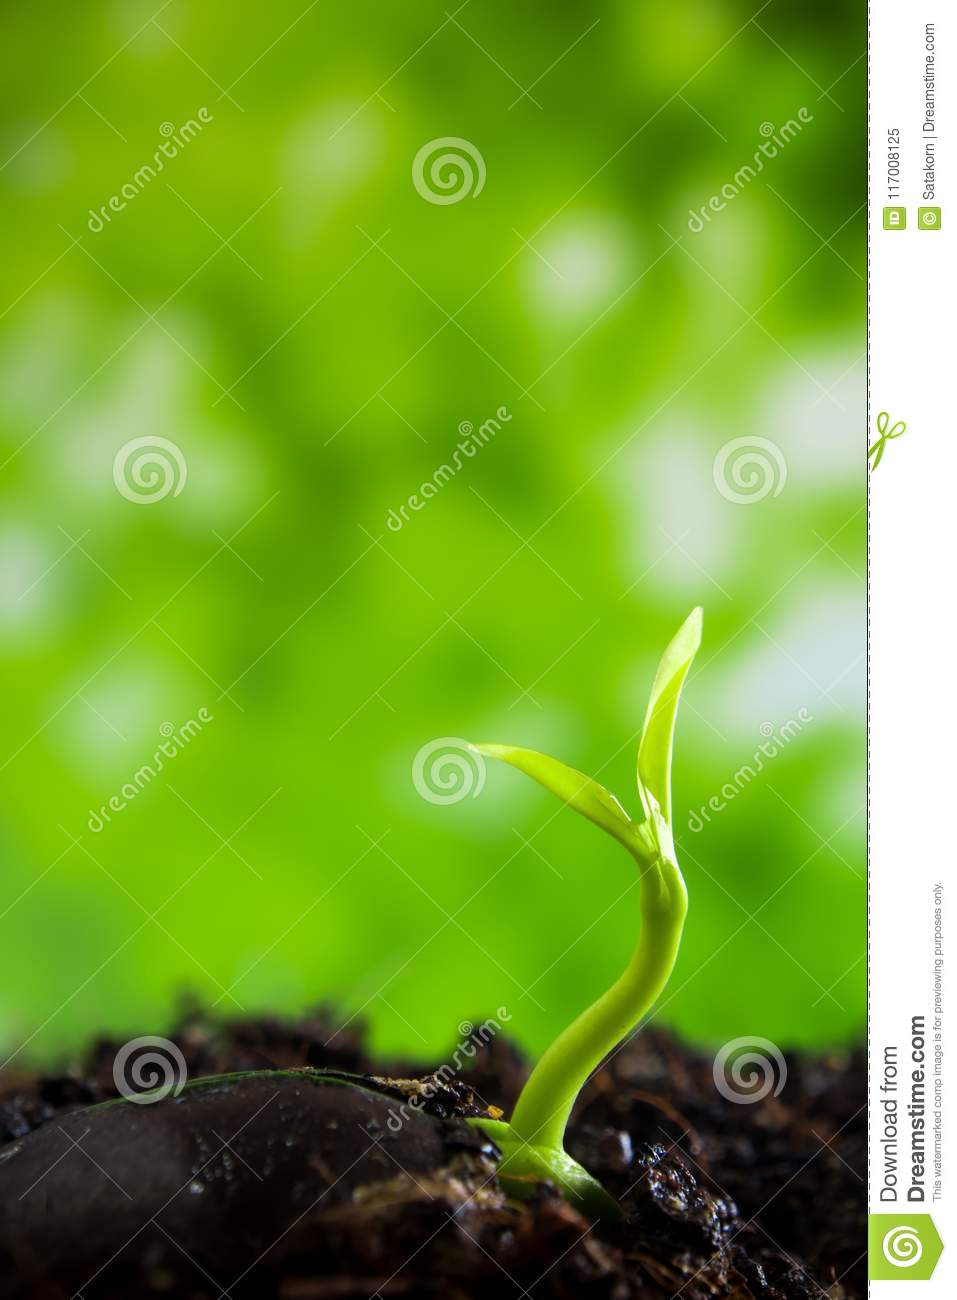 Freshness new life, leaves of young plant seedling in nature